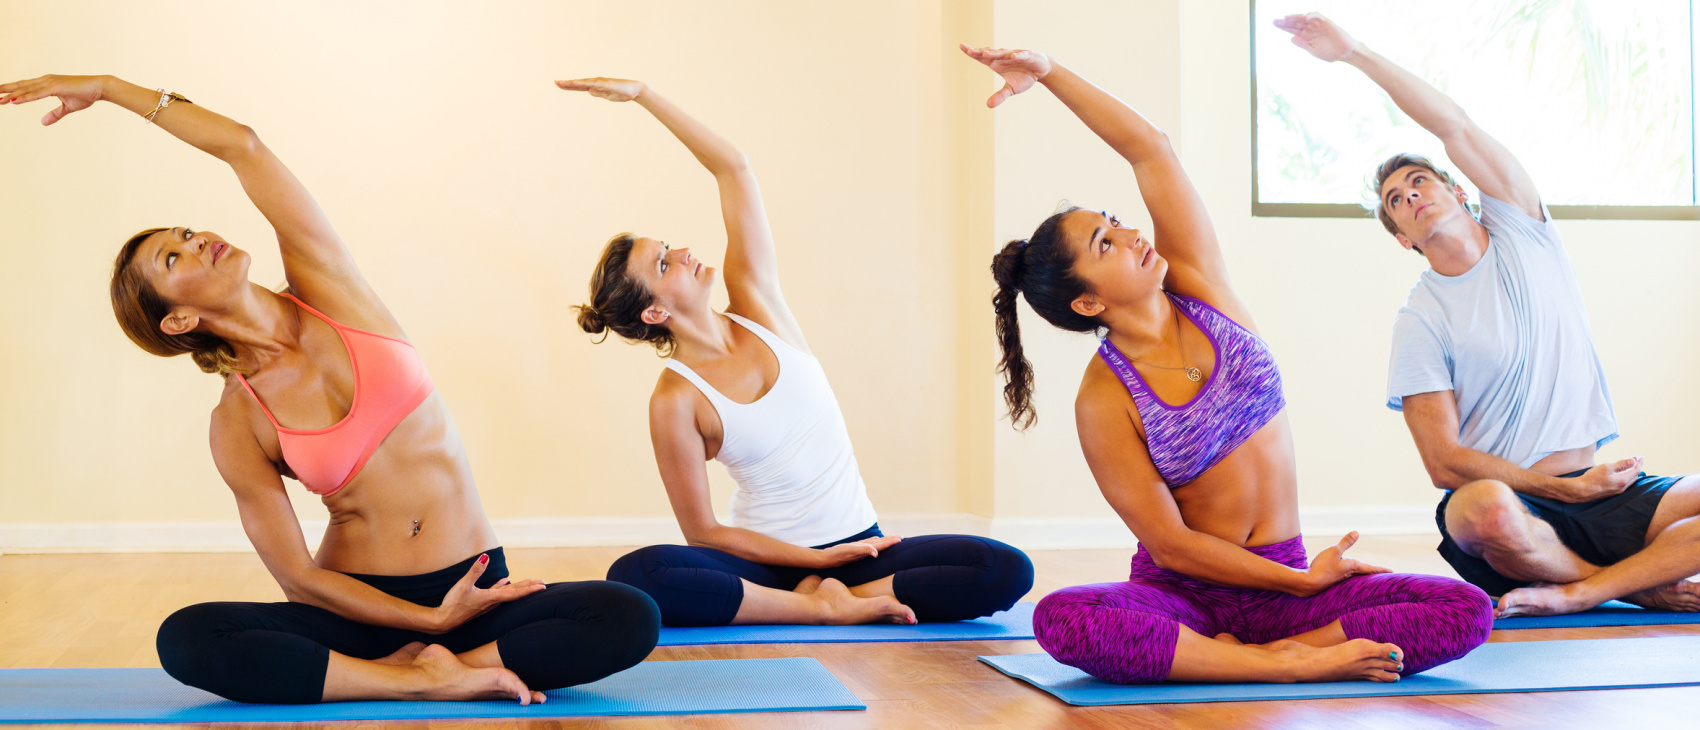 yoga posses man and women